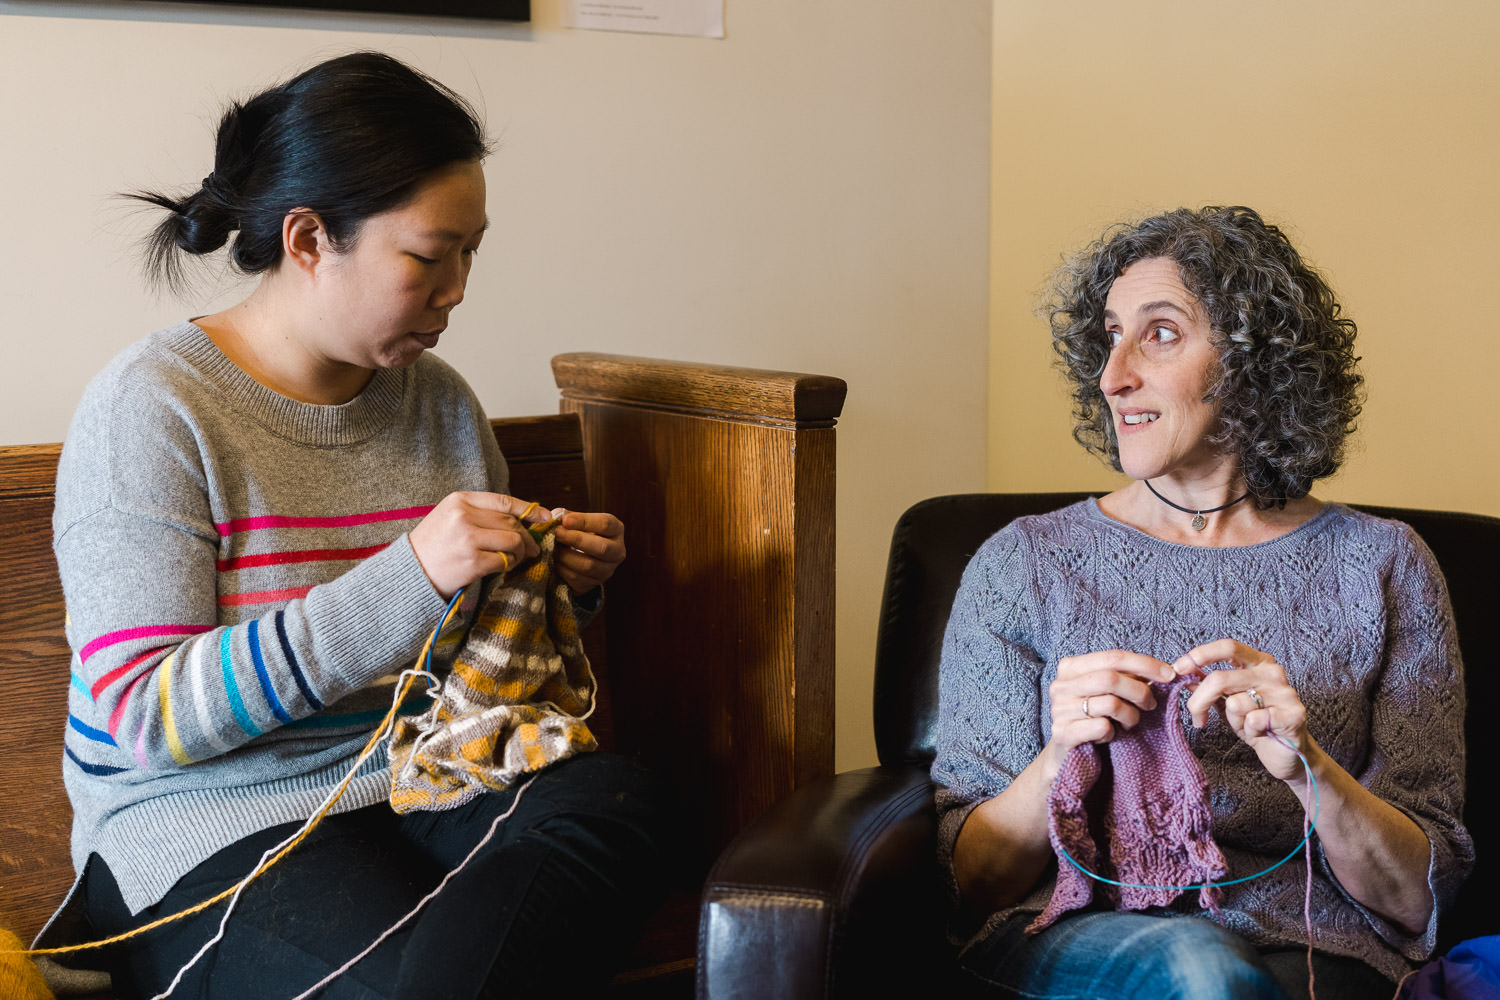 Two friends drink coffee together and knit.